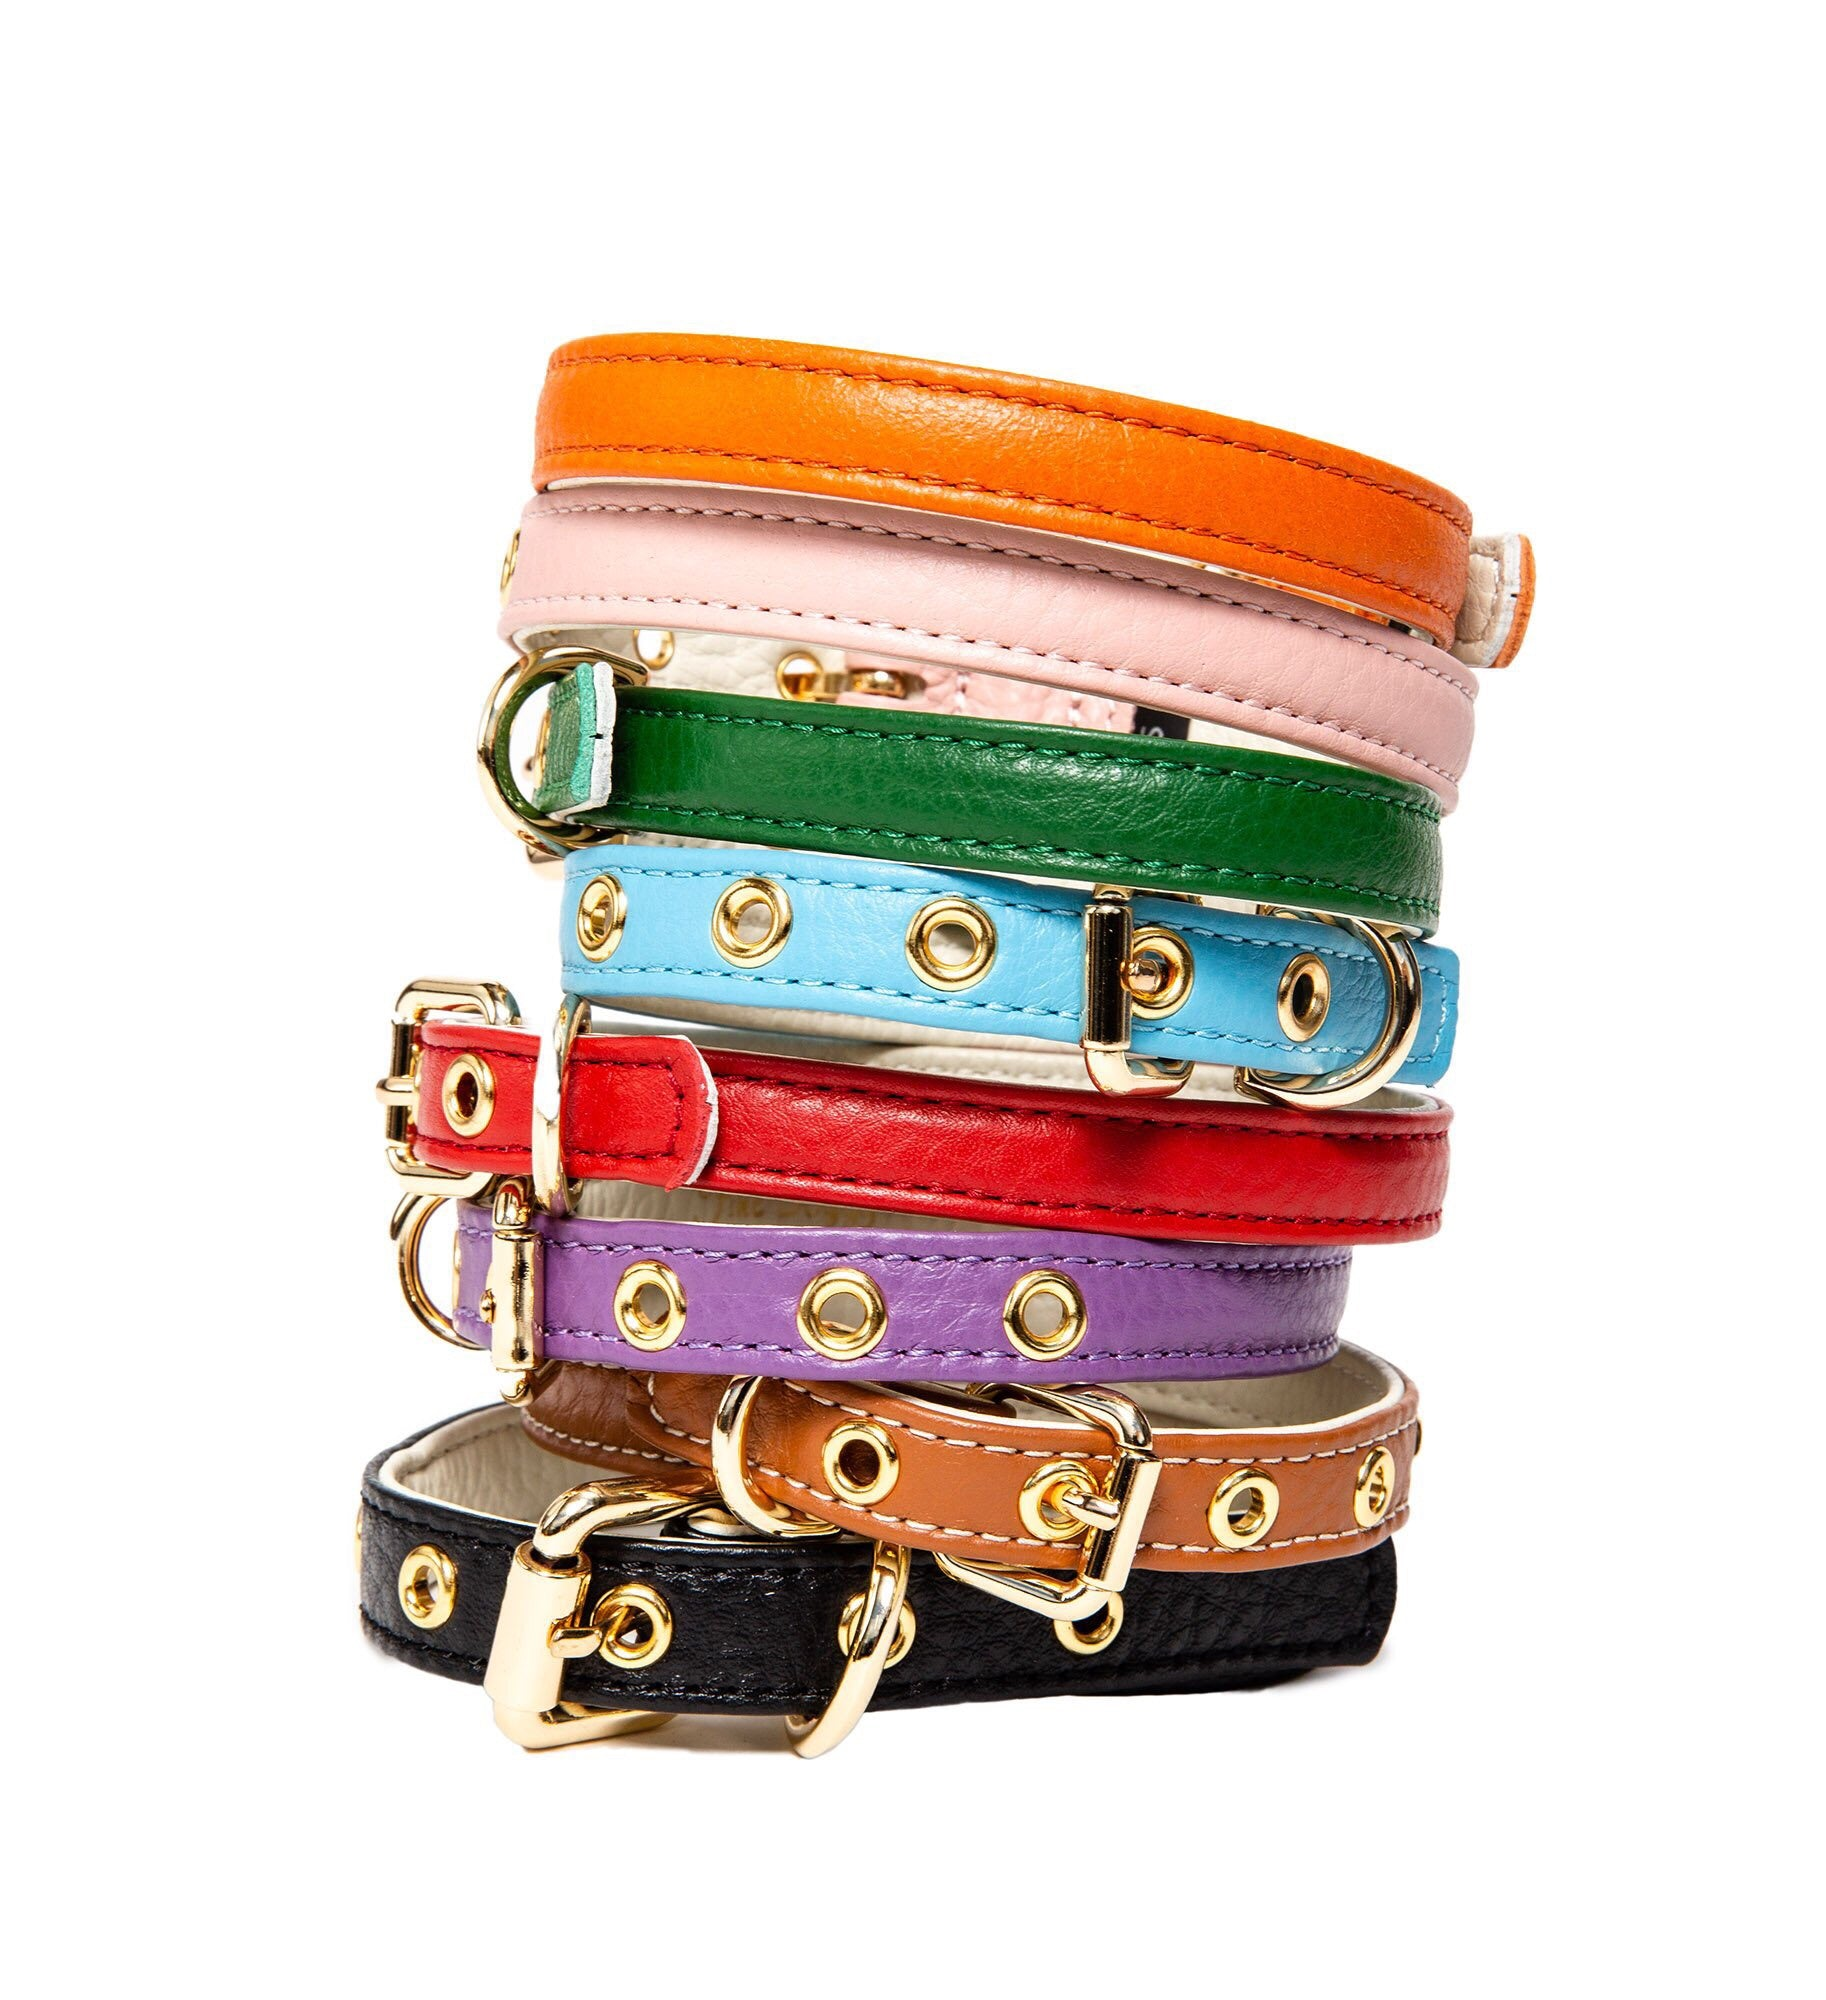 Dog Collar - Leads - Fine Leather Dog Lead - 9 Color Options